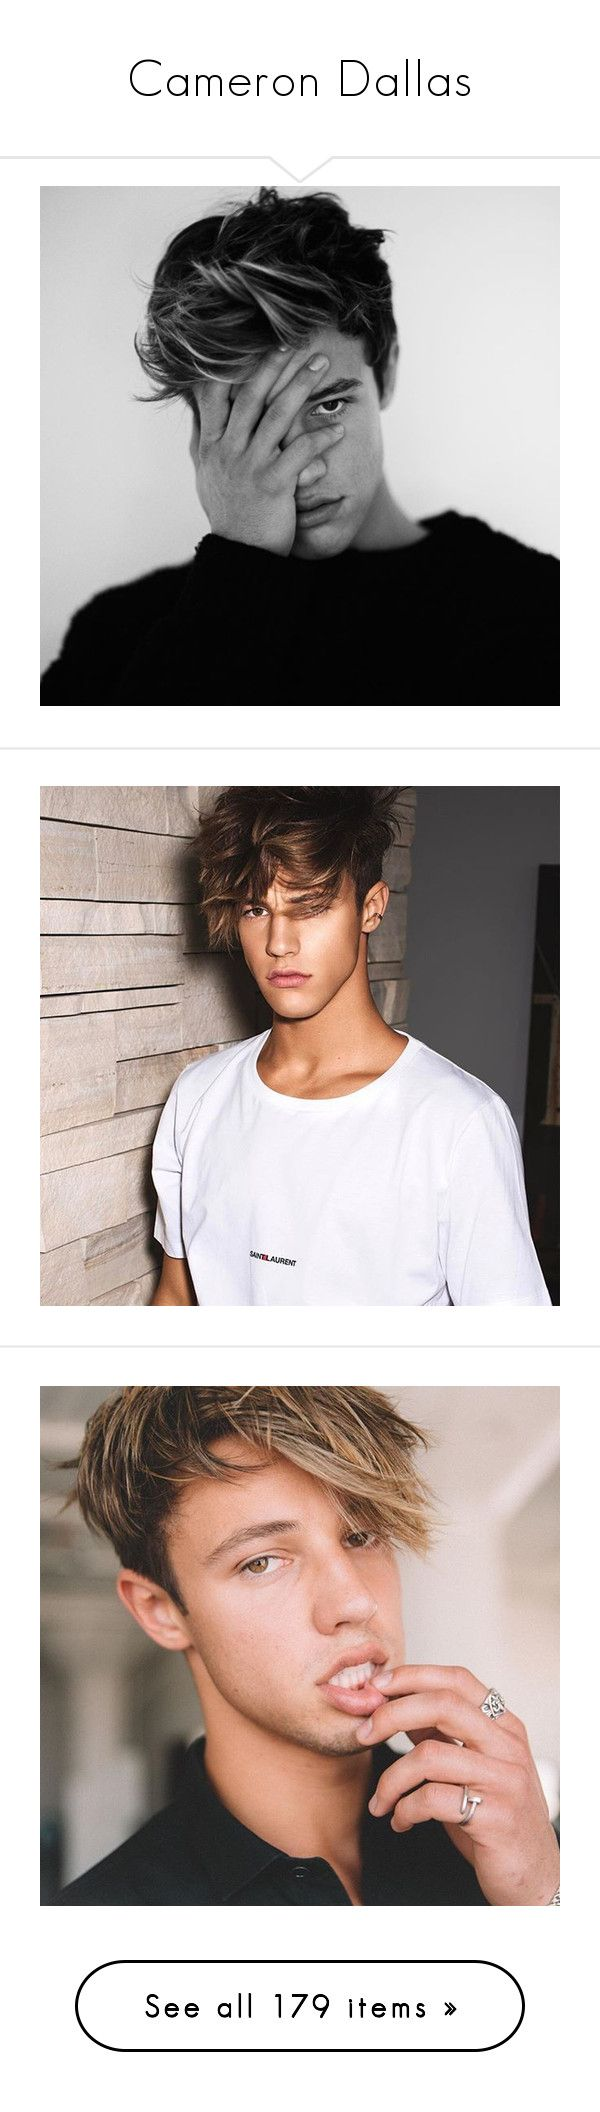 """Cameron Dallas"" by beingmyselfaf ❤ liked on Polyvore featuring CameronDallas, magcon, magconboys, cameron dallas, jewelry, watches, star jewelry, cameron, ppl and boys"